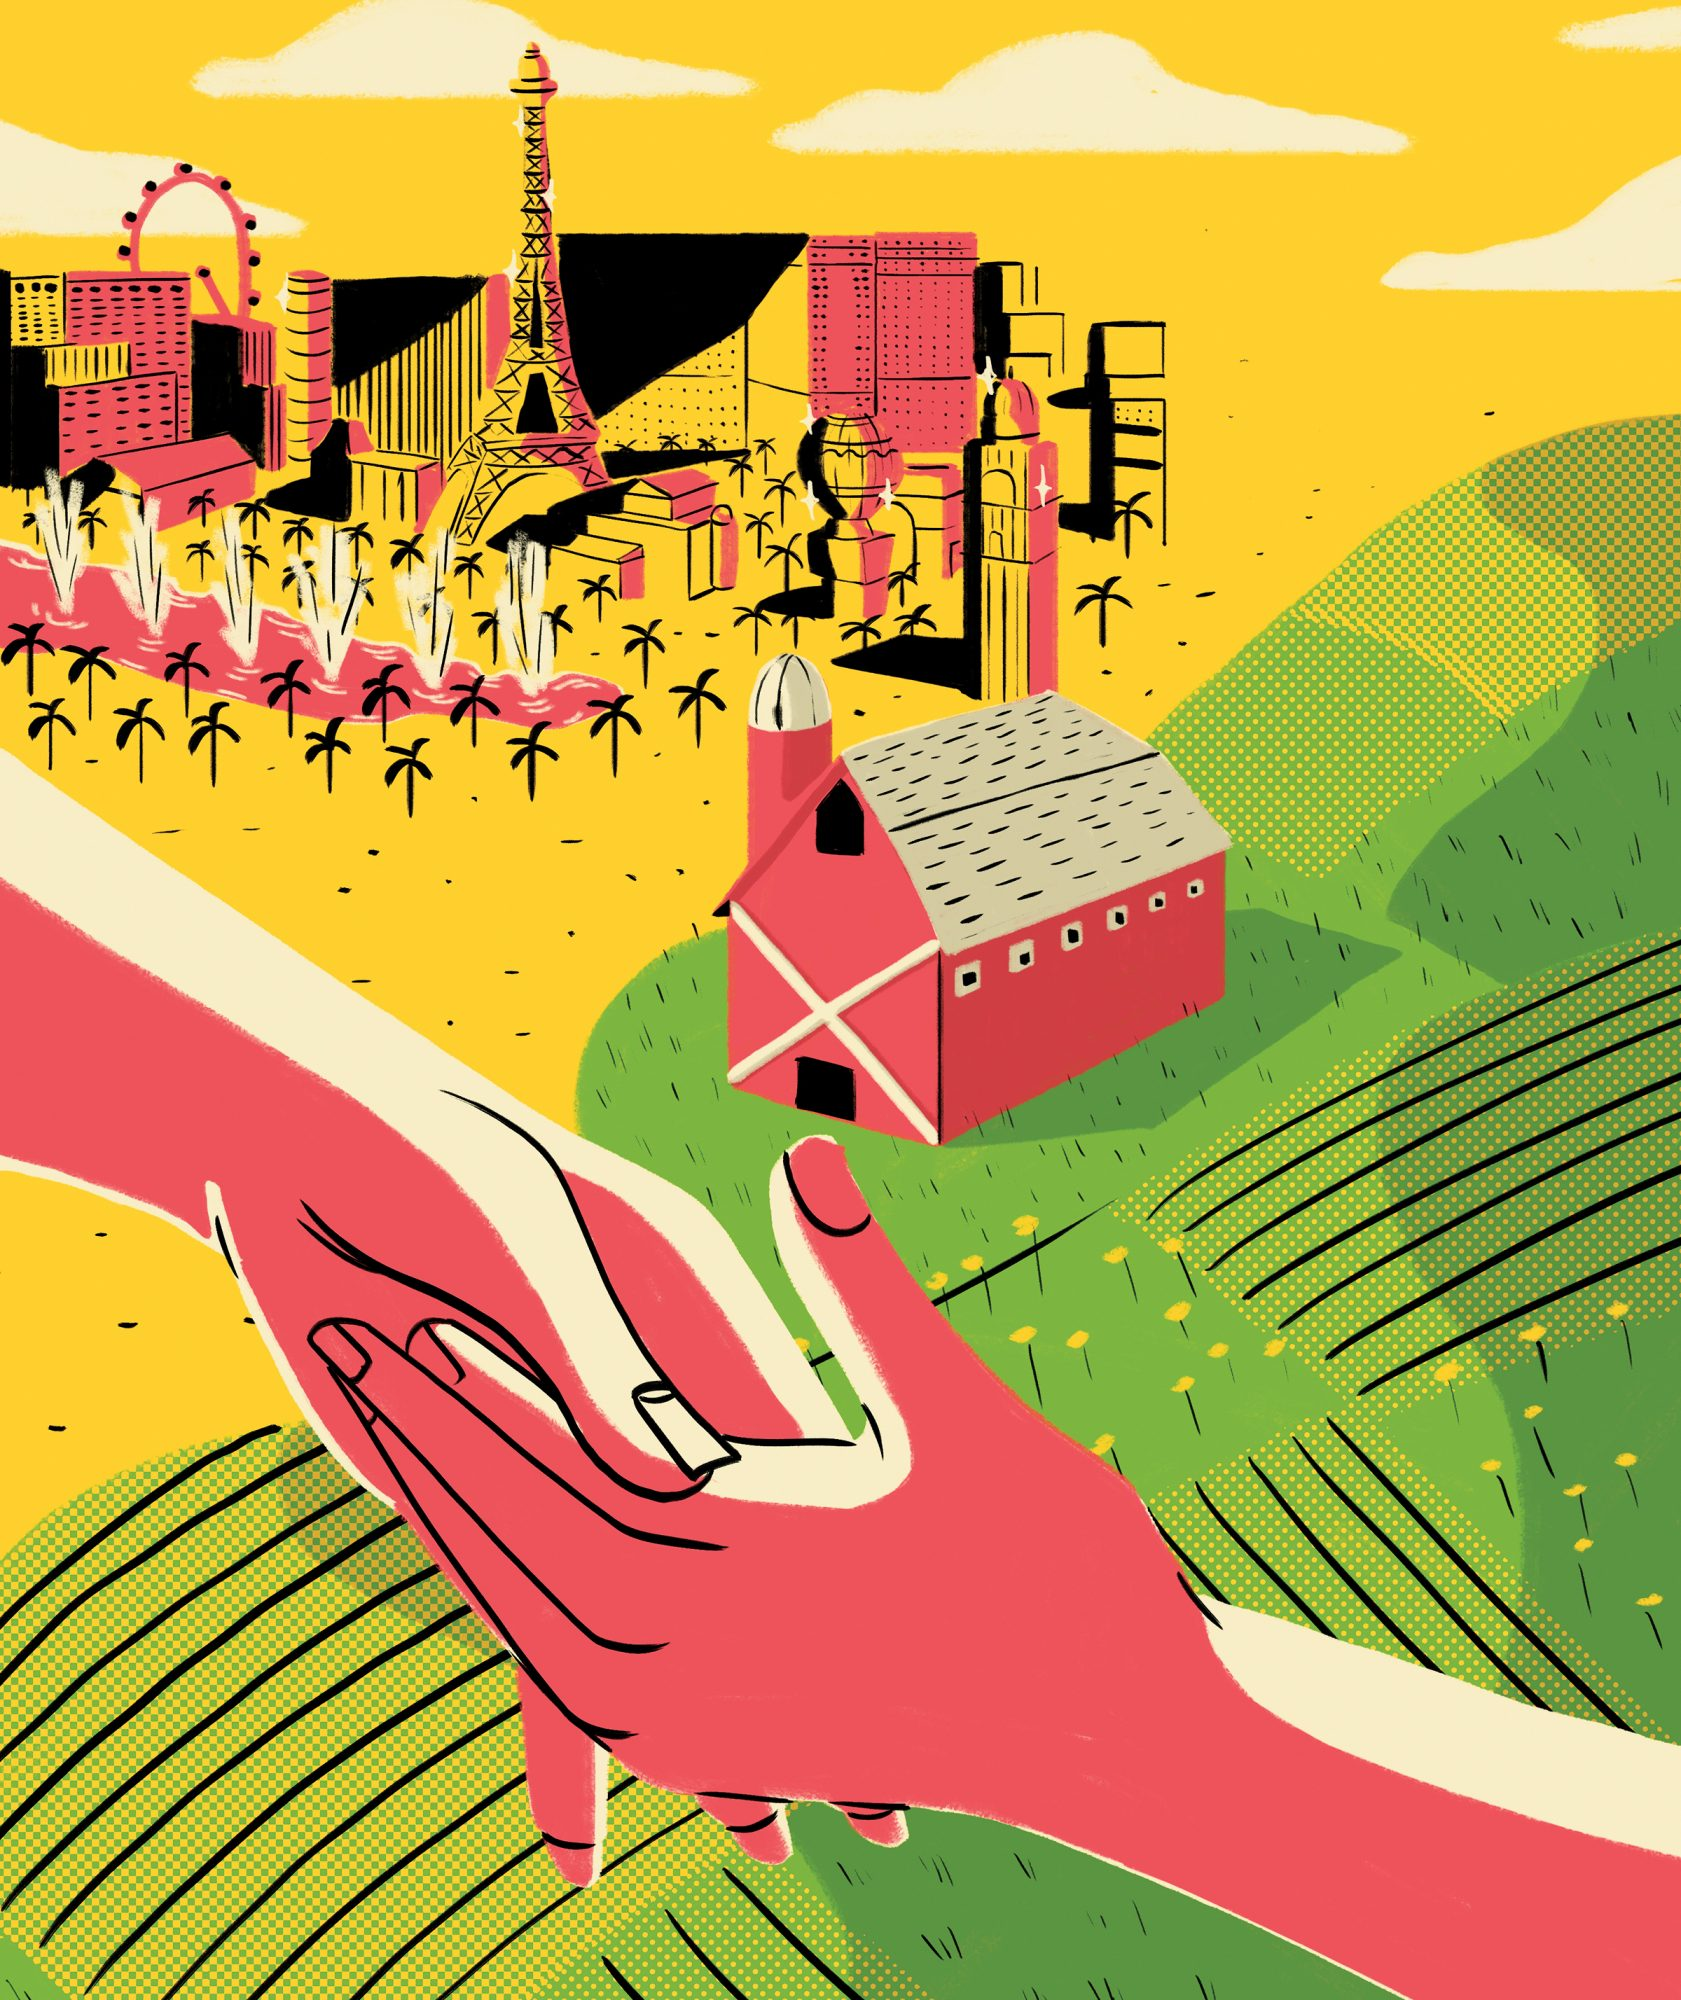 Illustration: holding hands in front of farm and Vegas landscape